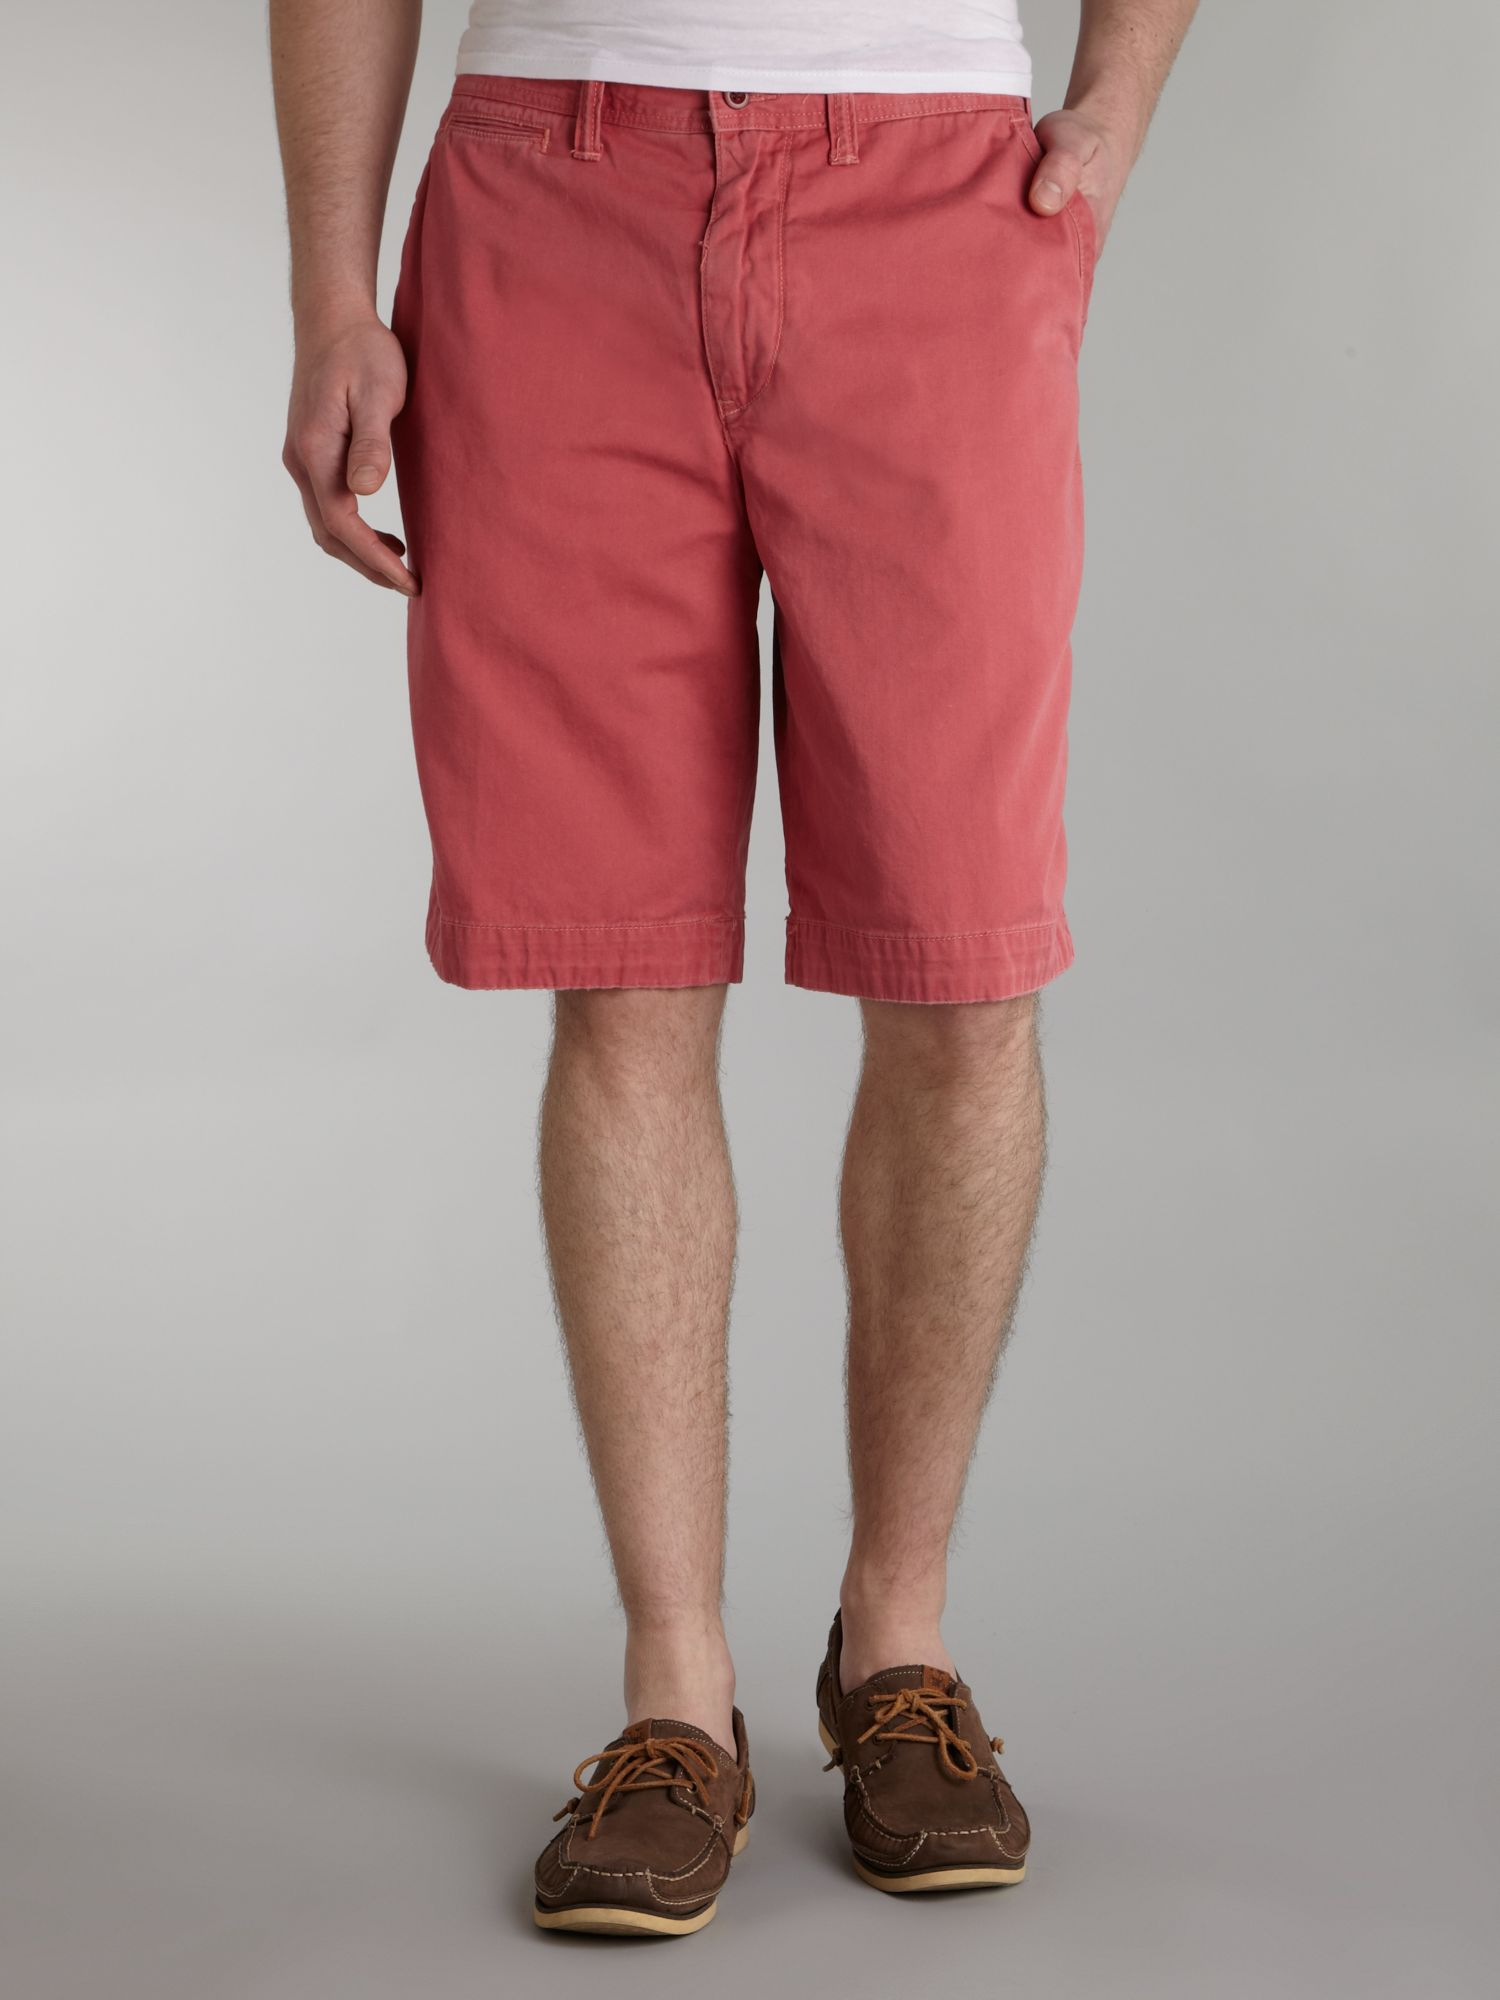 Rugged Bleeker shorts